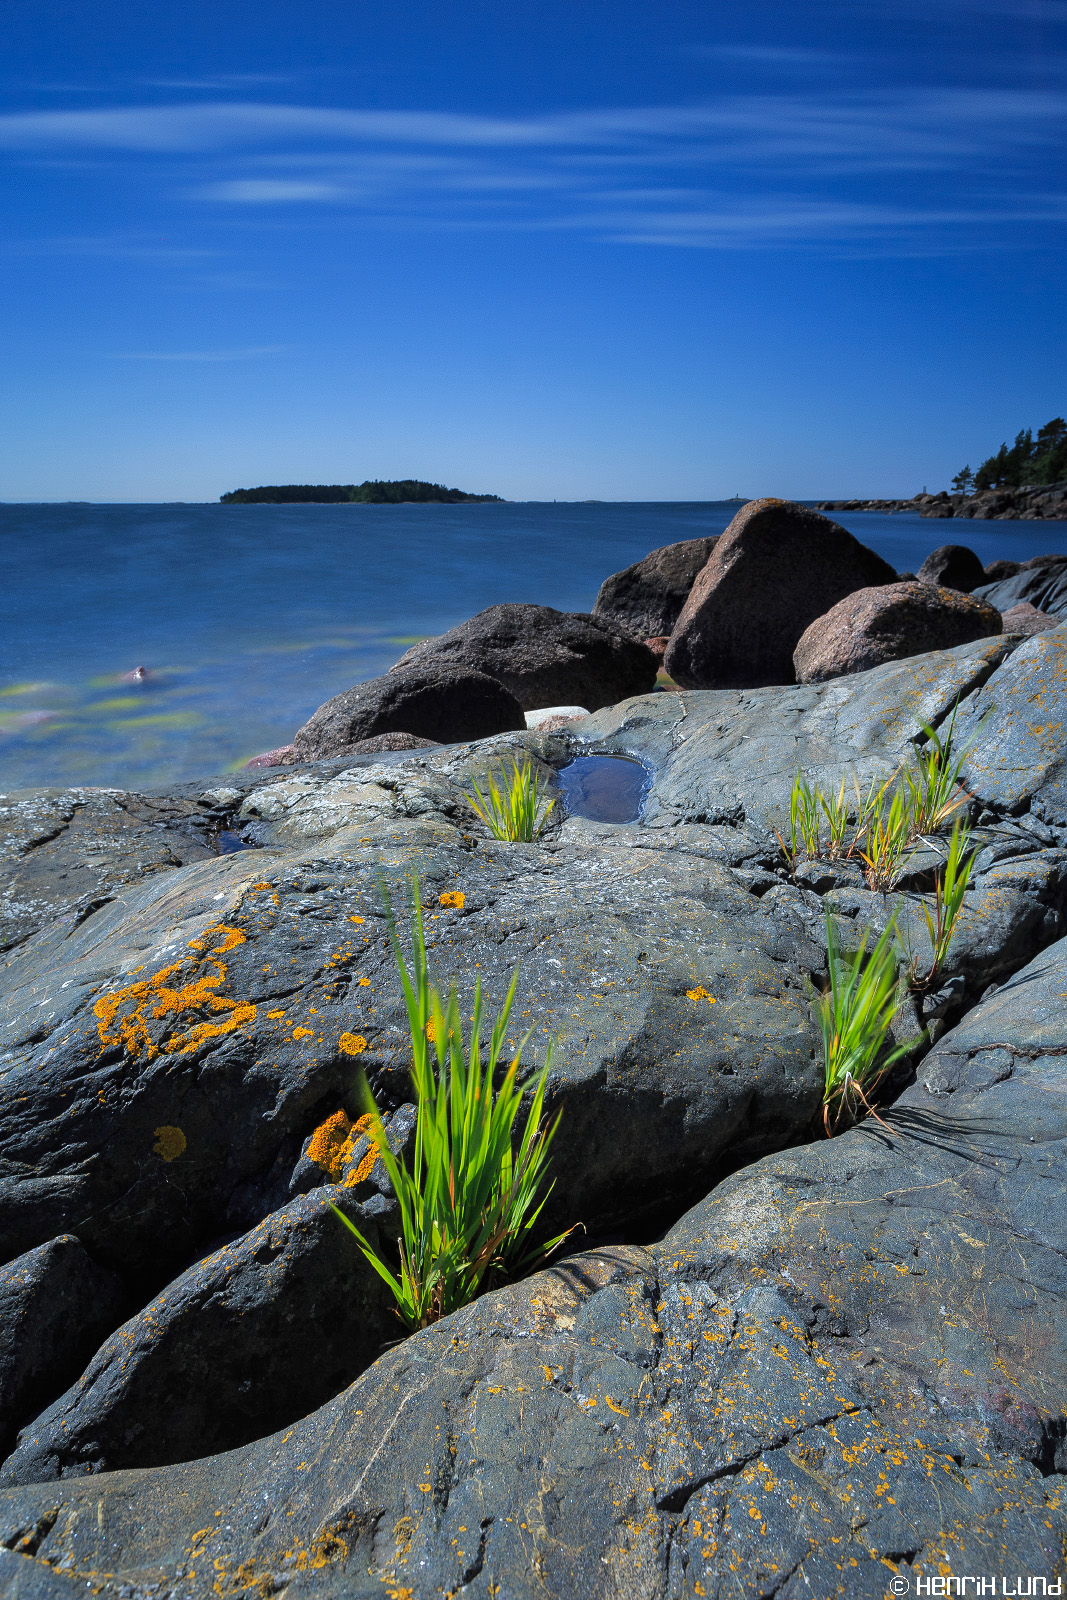 A view to SE from the old pilot watchout in Pellinge, Borgå, Finland, June 2014.